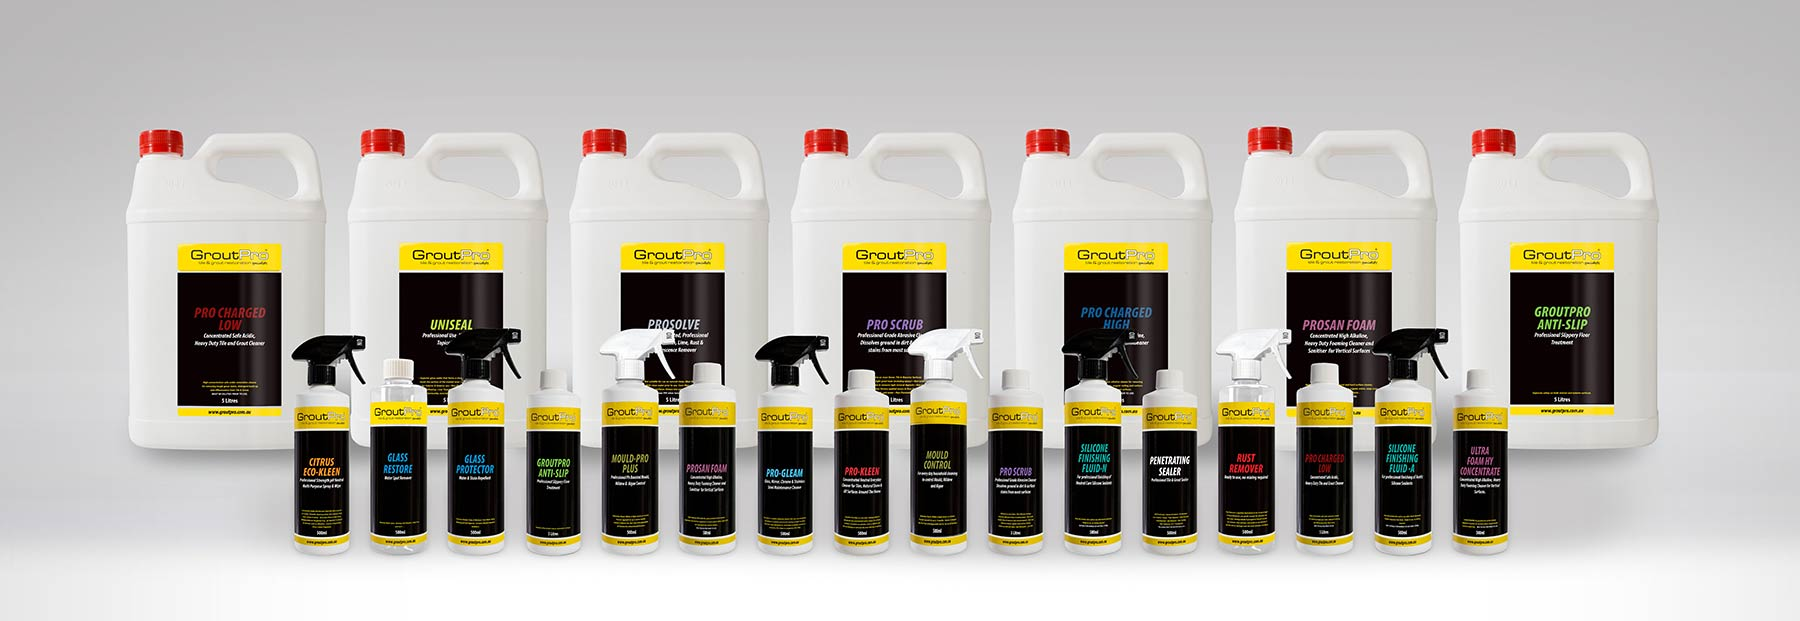 GroutPro Products